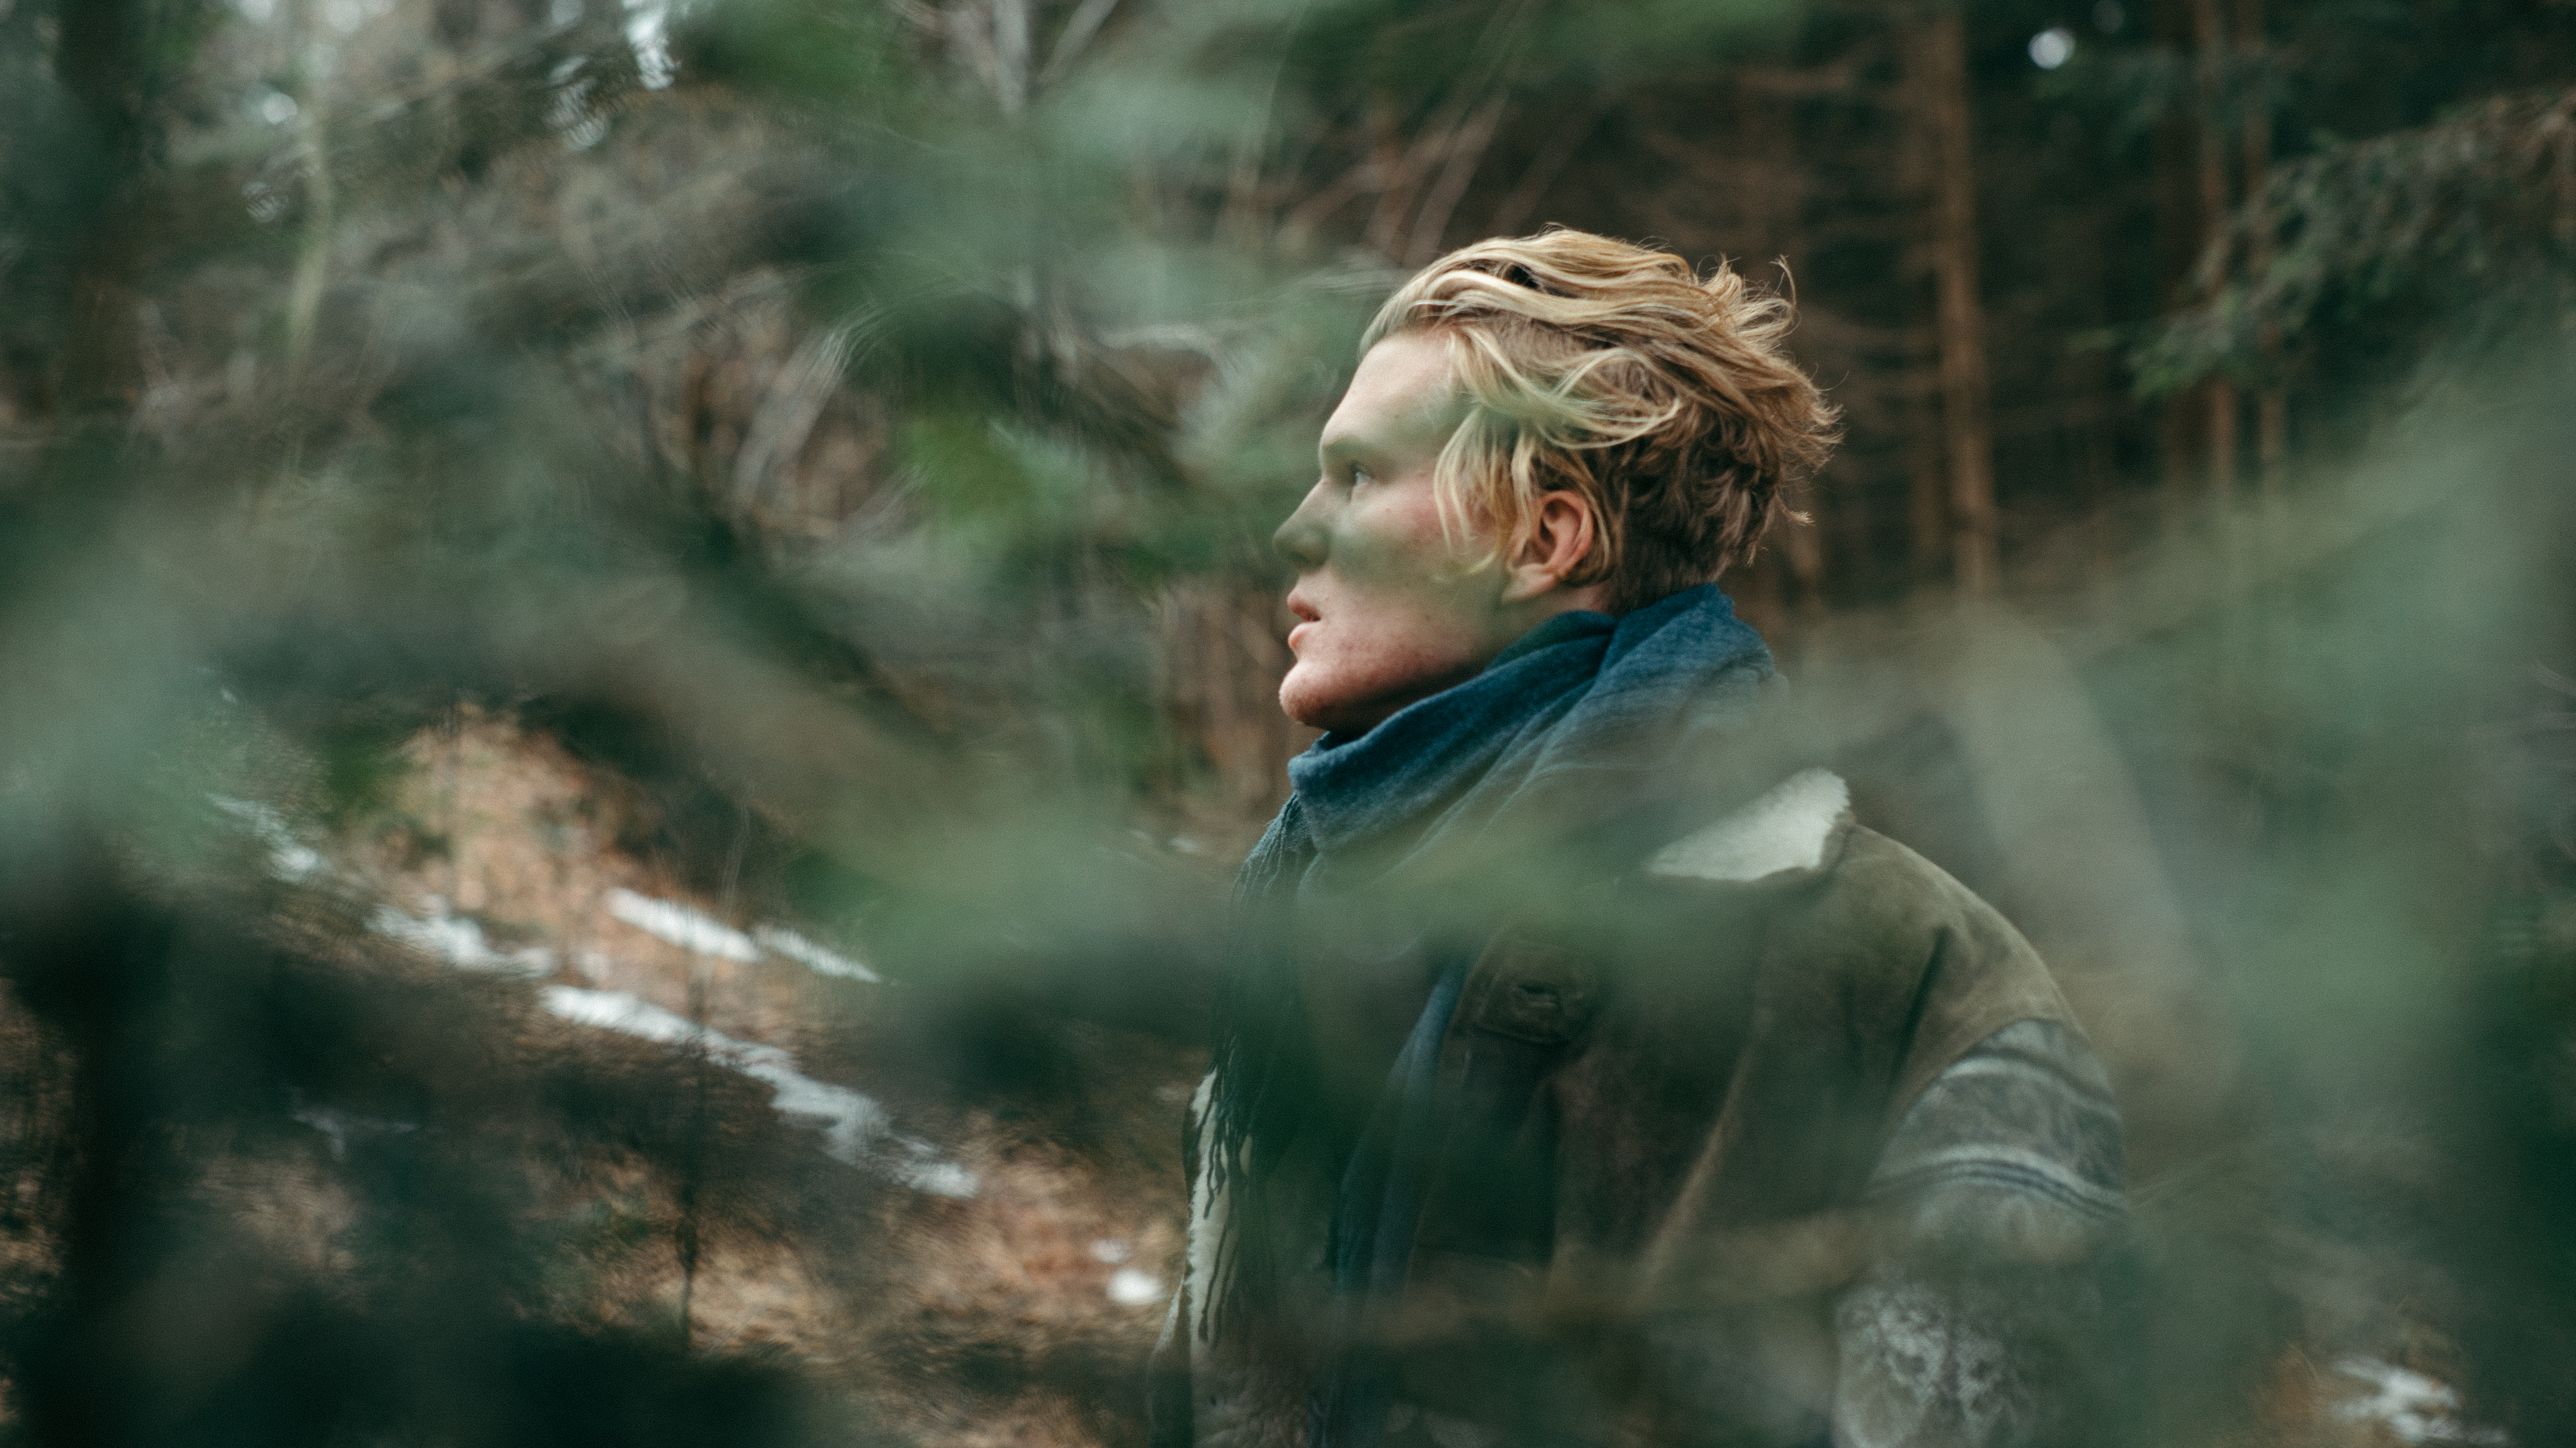 A blonde man wearing a scarf in the forest